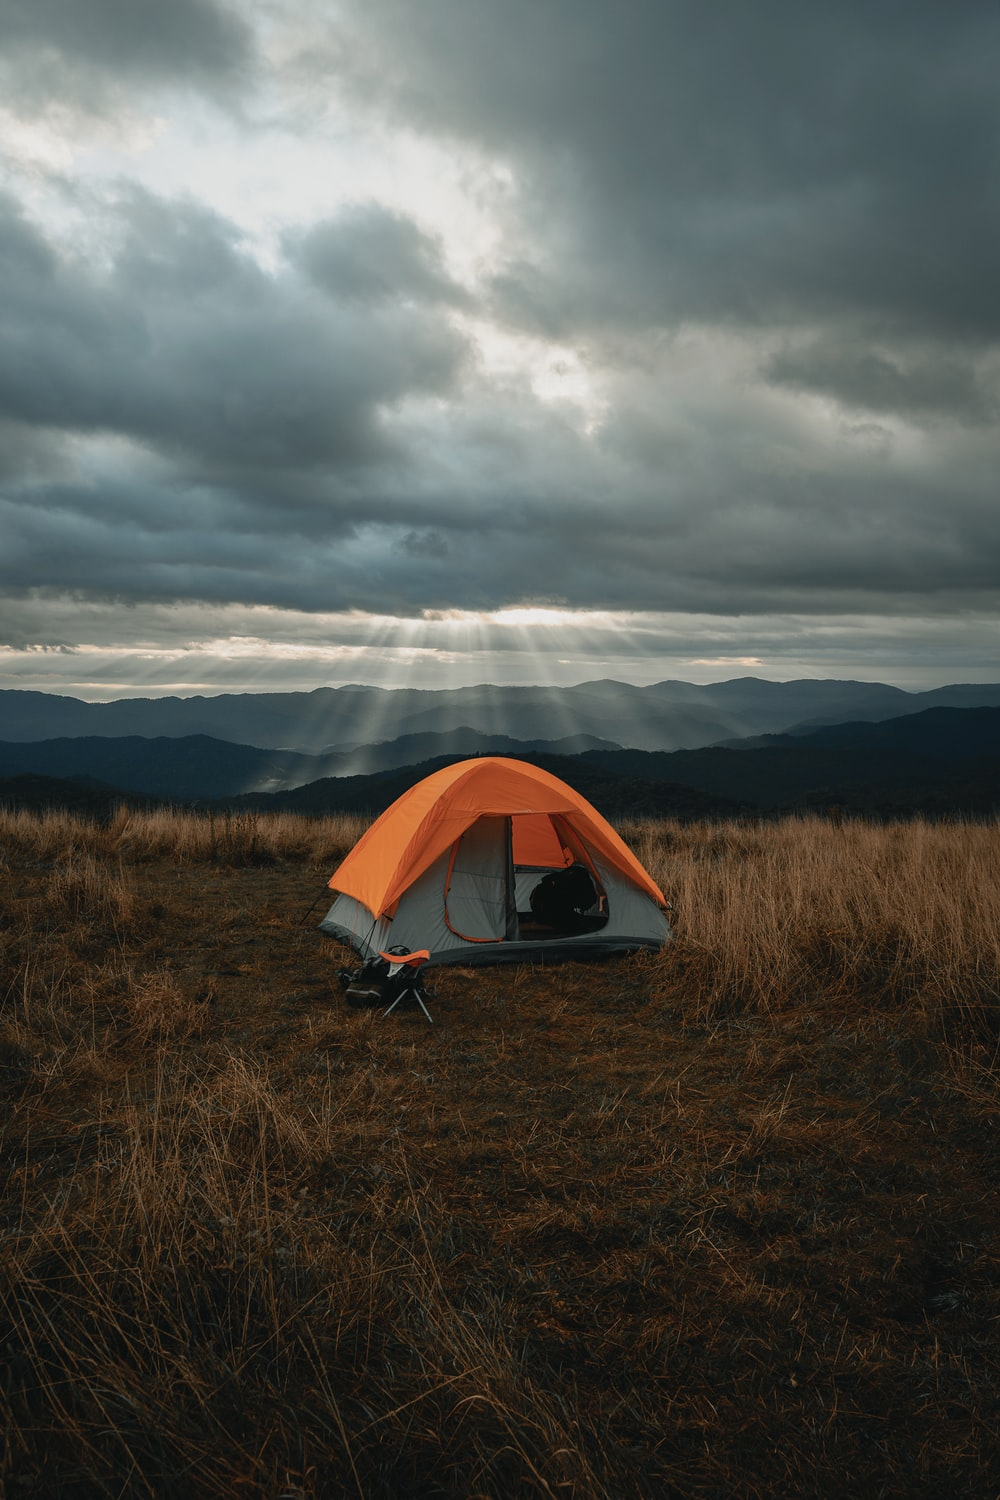 set-up gray and orange tent on brown field under cloudy sky